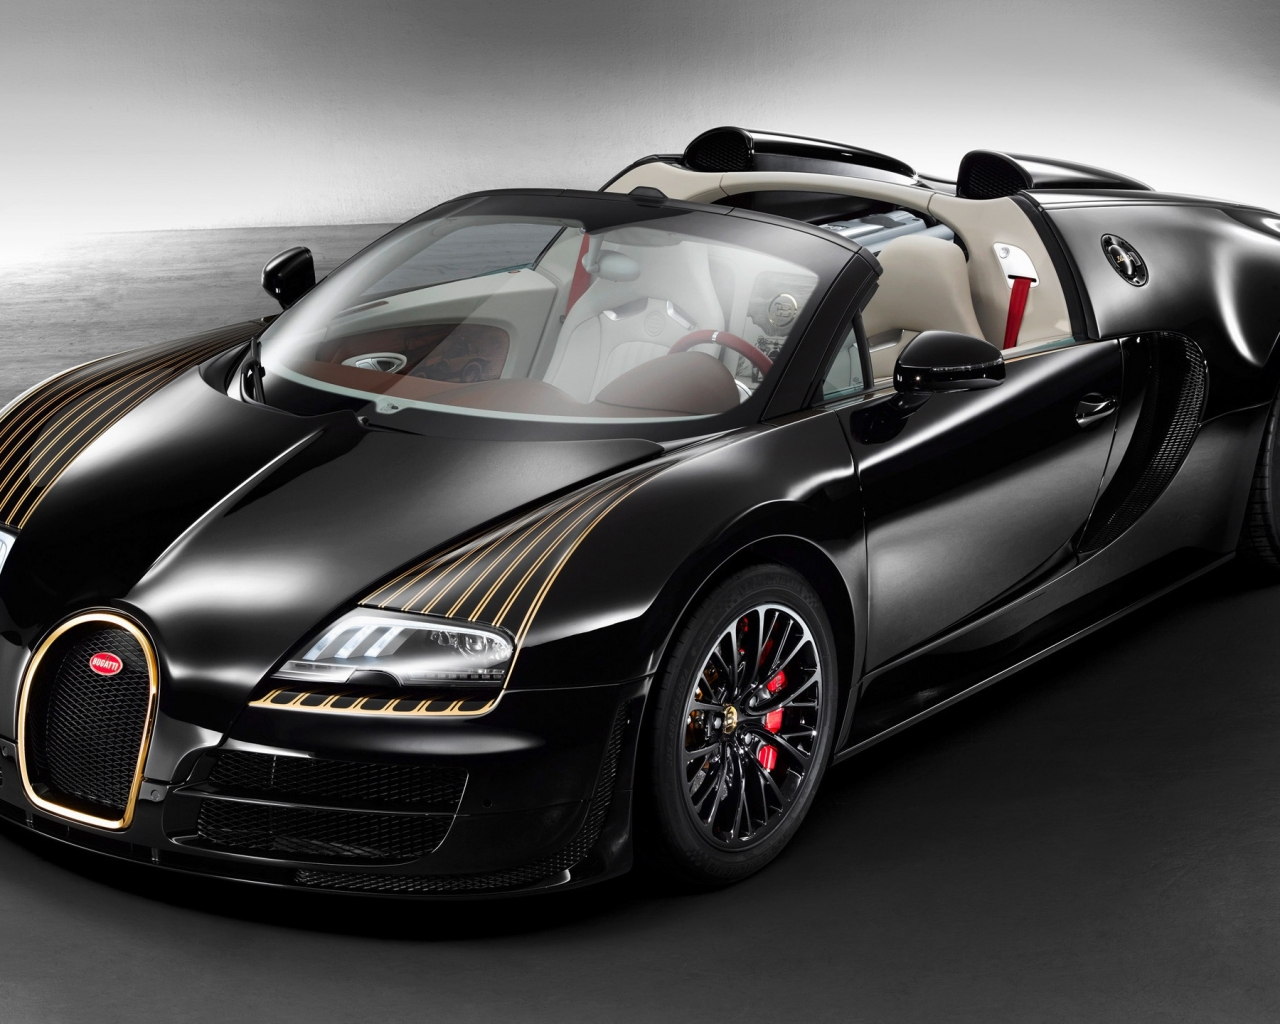 bugatti veyron grand sport vitesse legend black bess 2014 bugatti veyron grand sport vitesse. Black Bedroom Furniture Sets. Home Design Ideas